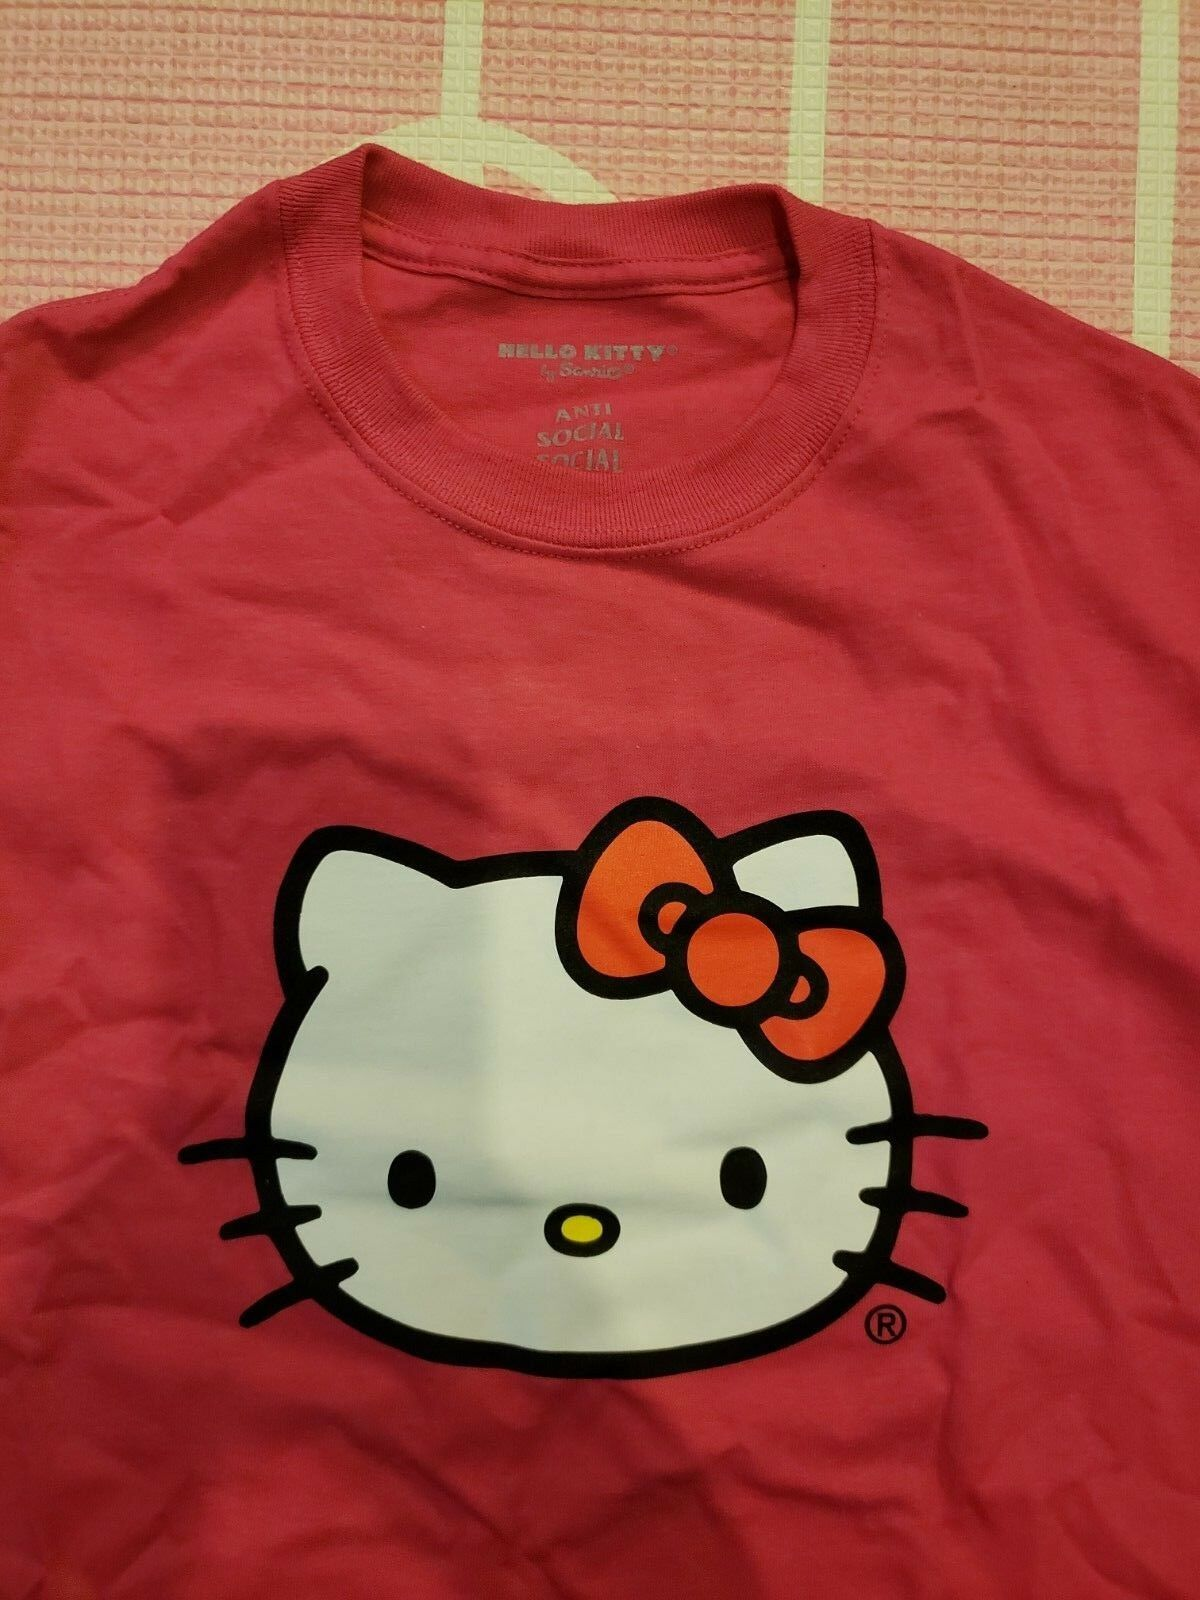 Anti Social Social Club ASSC Hello Kitty Tee Shirt FW18 SOLD OUT IN HAND New S